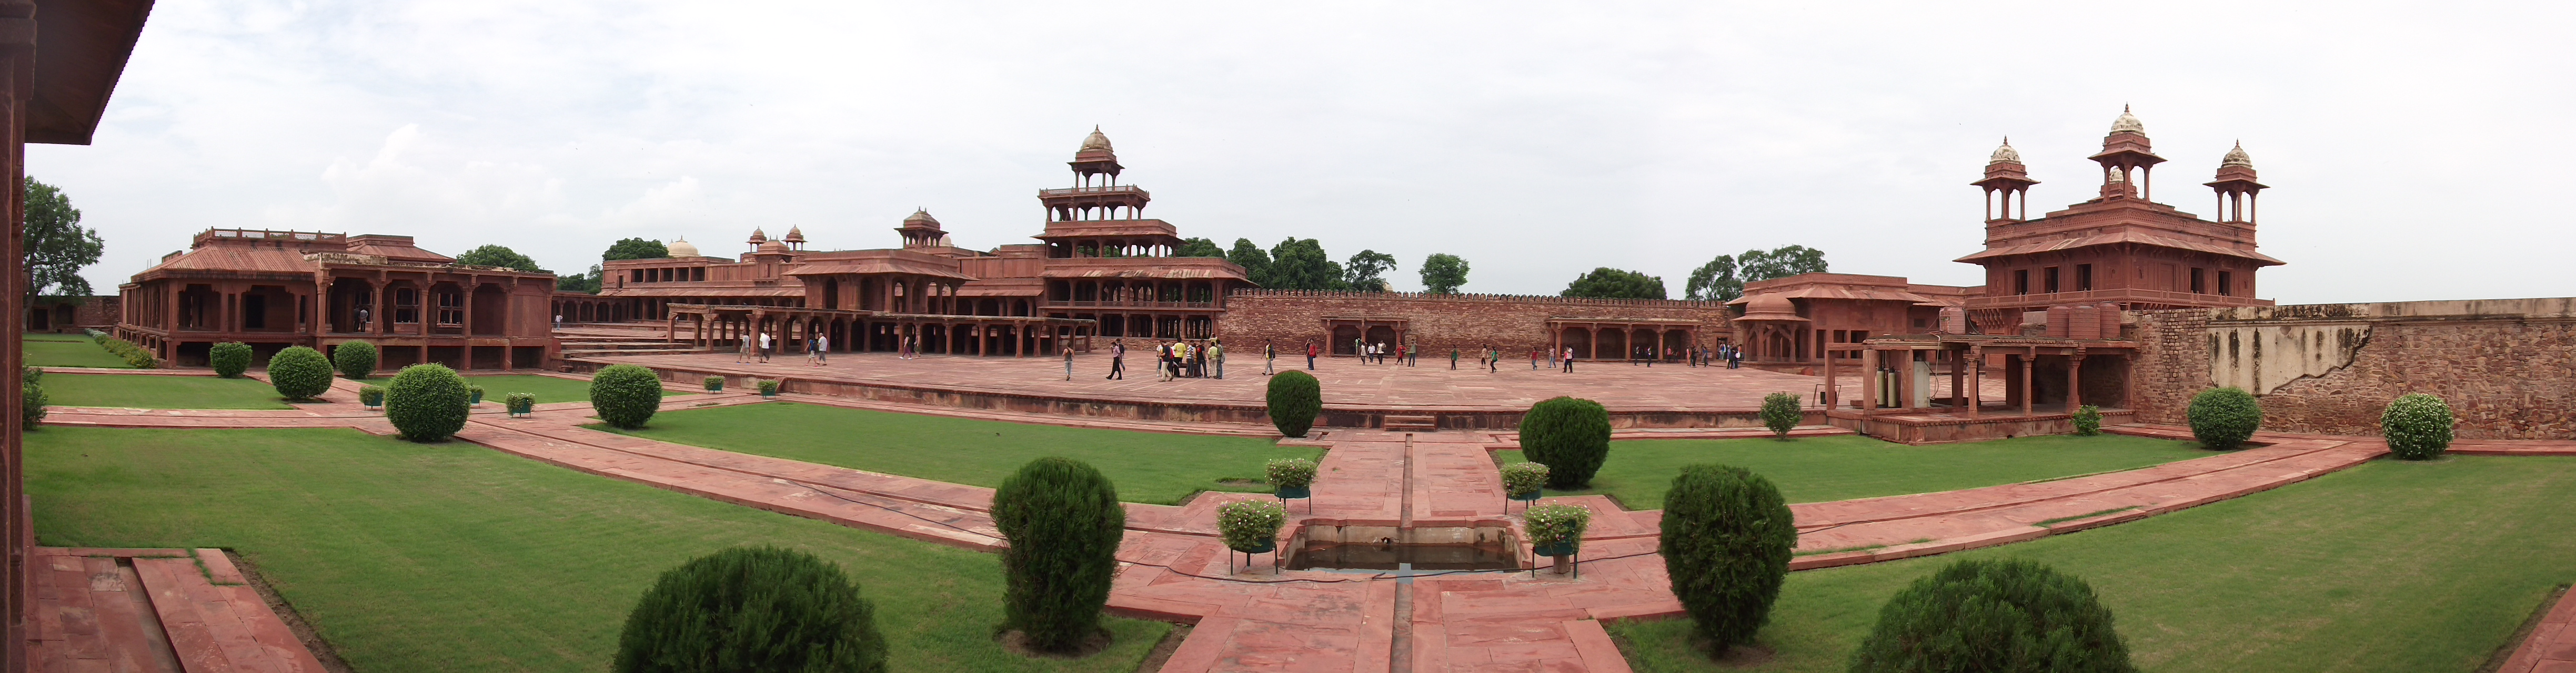 Panoramic_vie_of_Fahpur_Sikri_Palace